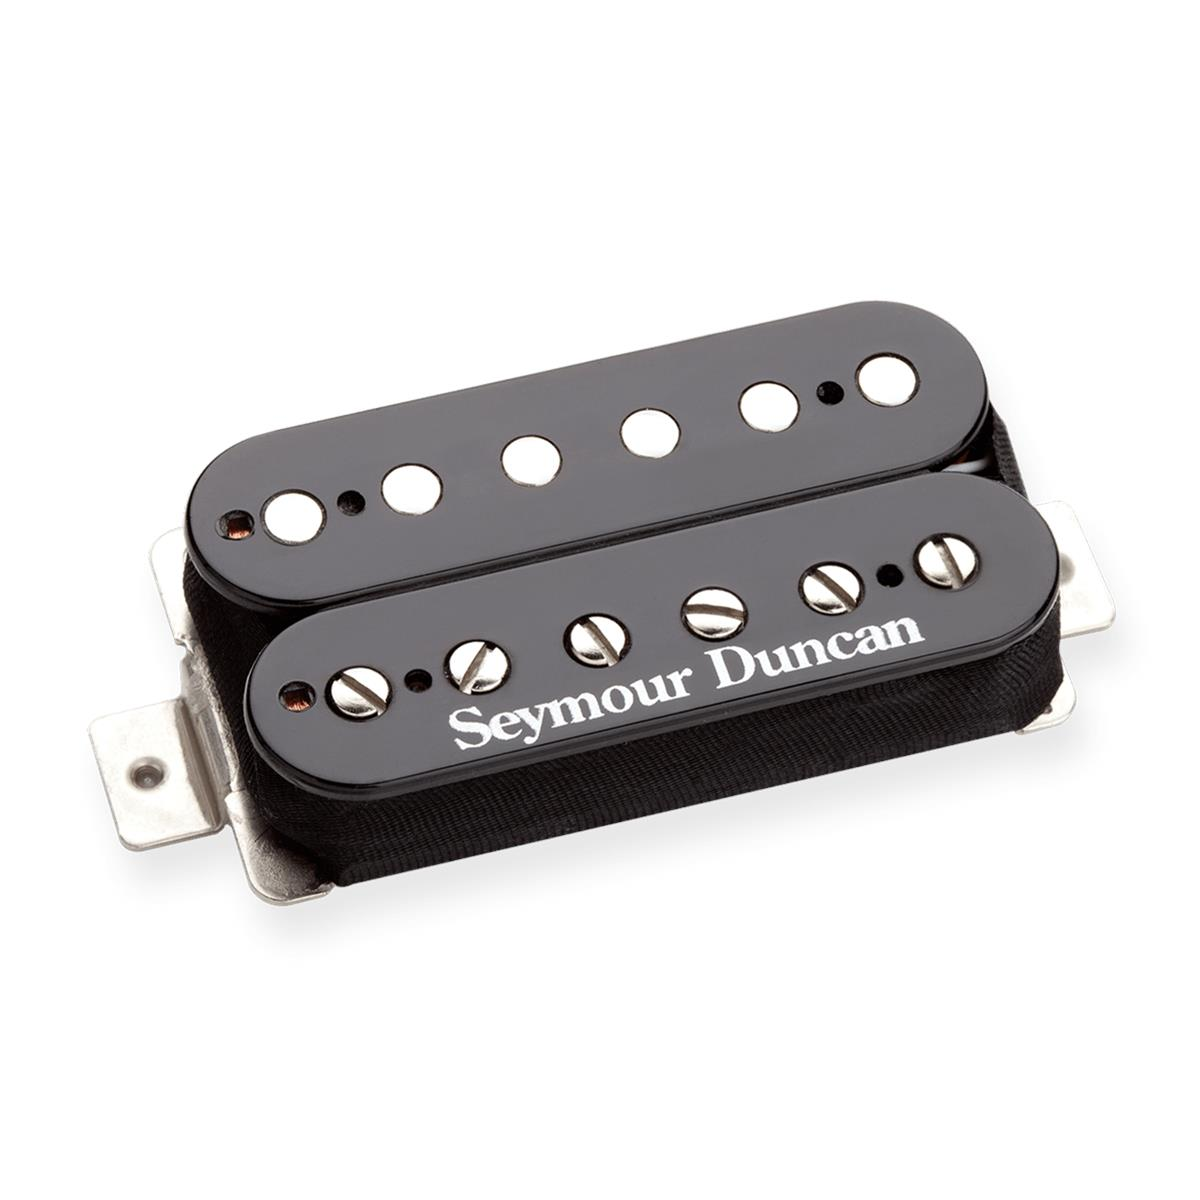 SEYMOUR-DUNCAN SH 6 B DISTORTION BRIDGE BLACK